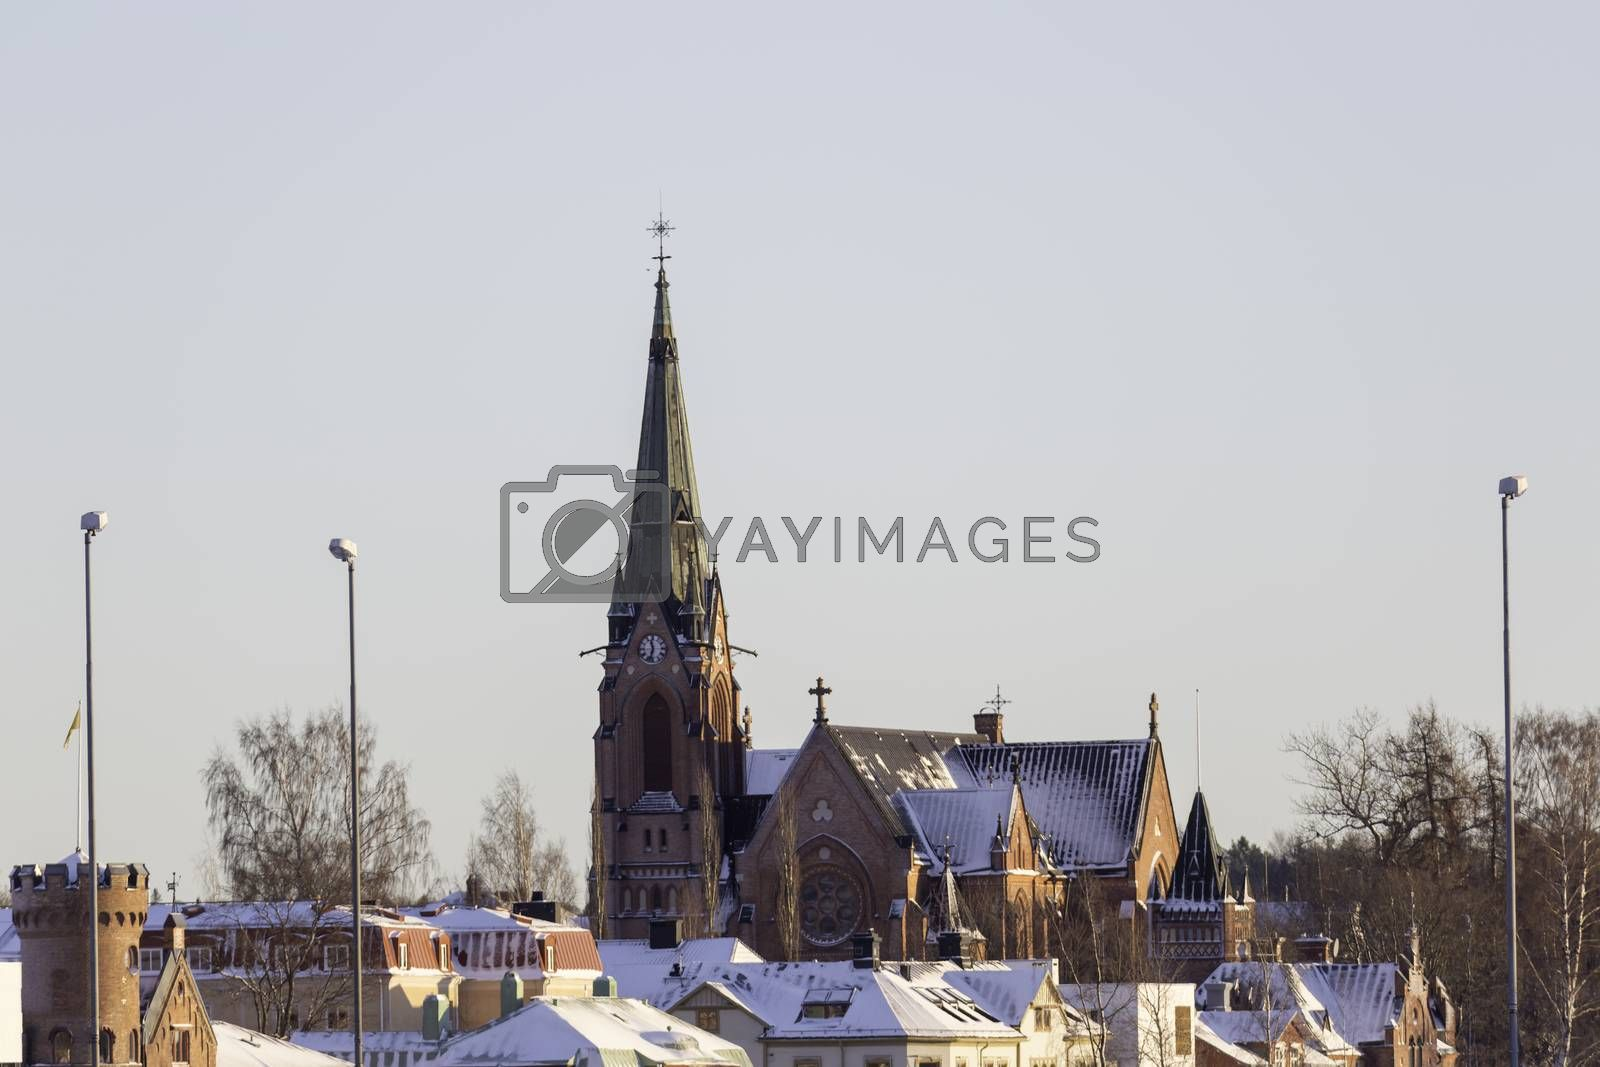 City Church in Umea, Sweden by Emmoth